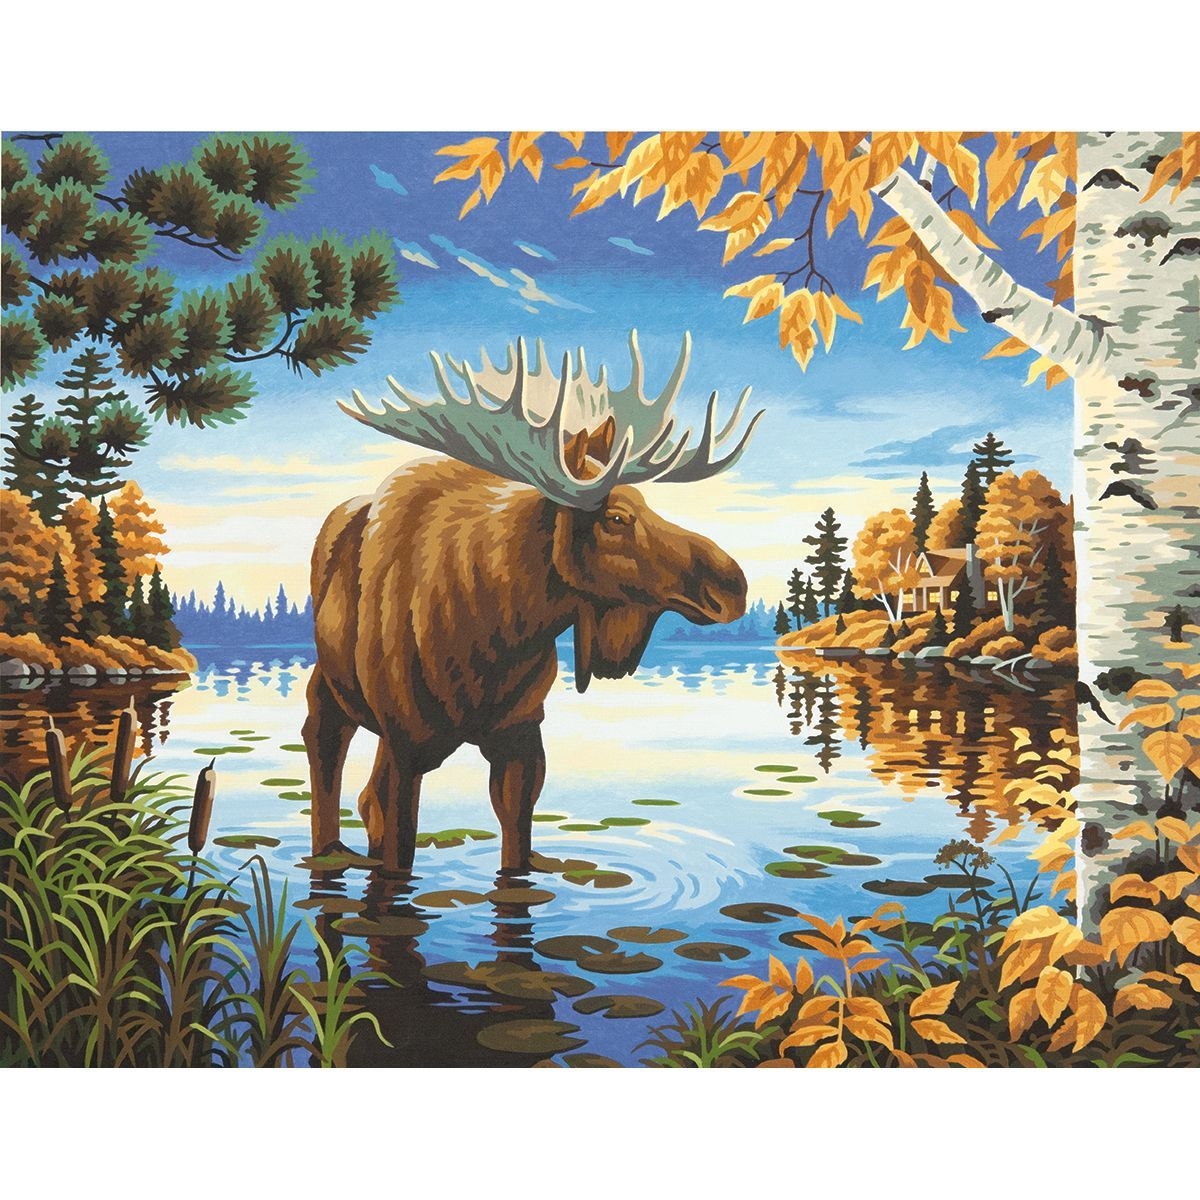 Dimensions Paint By Number Kit 11inX14in-Majestic Moose